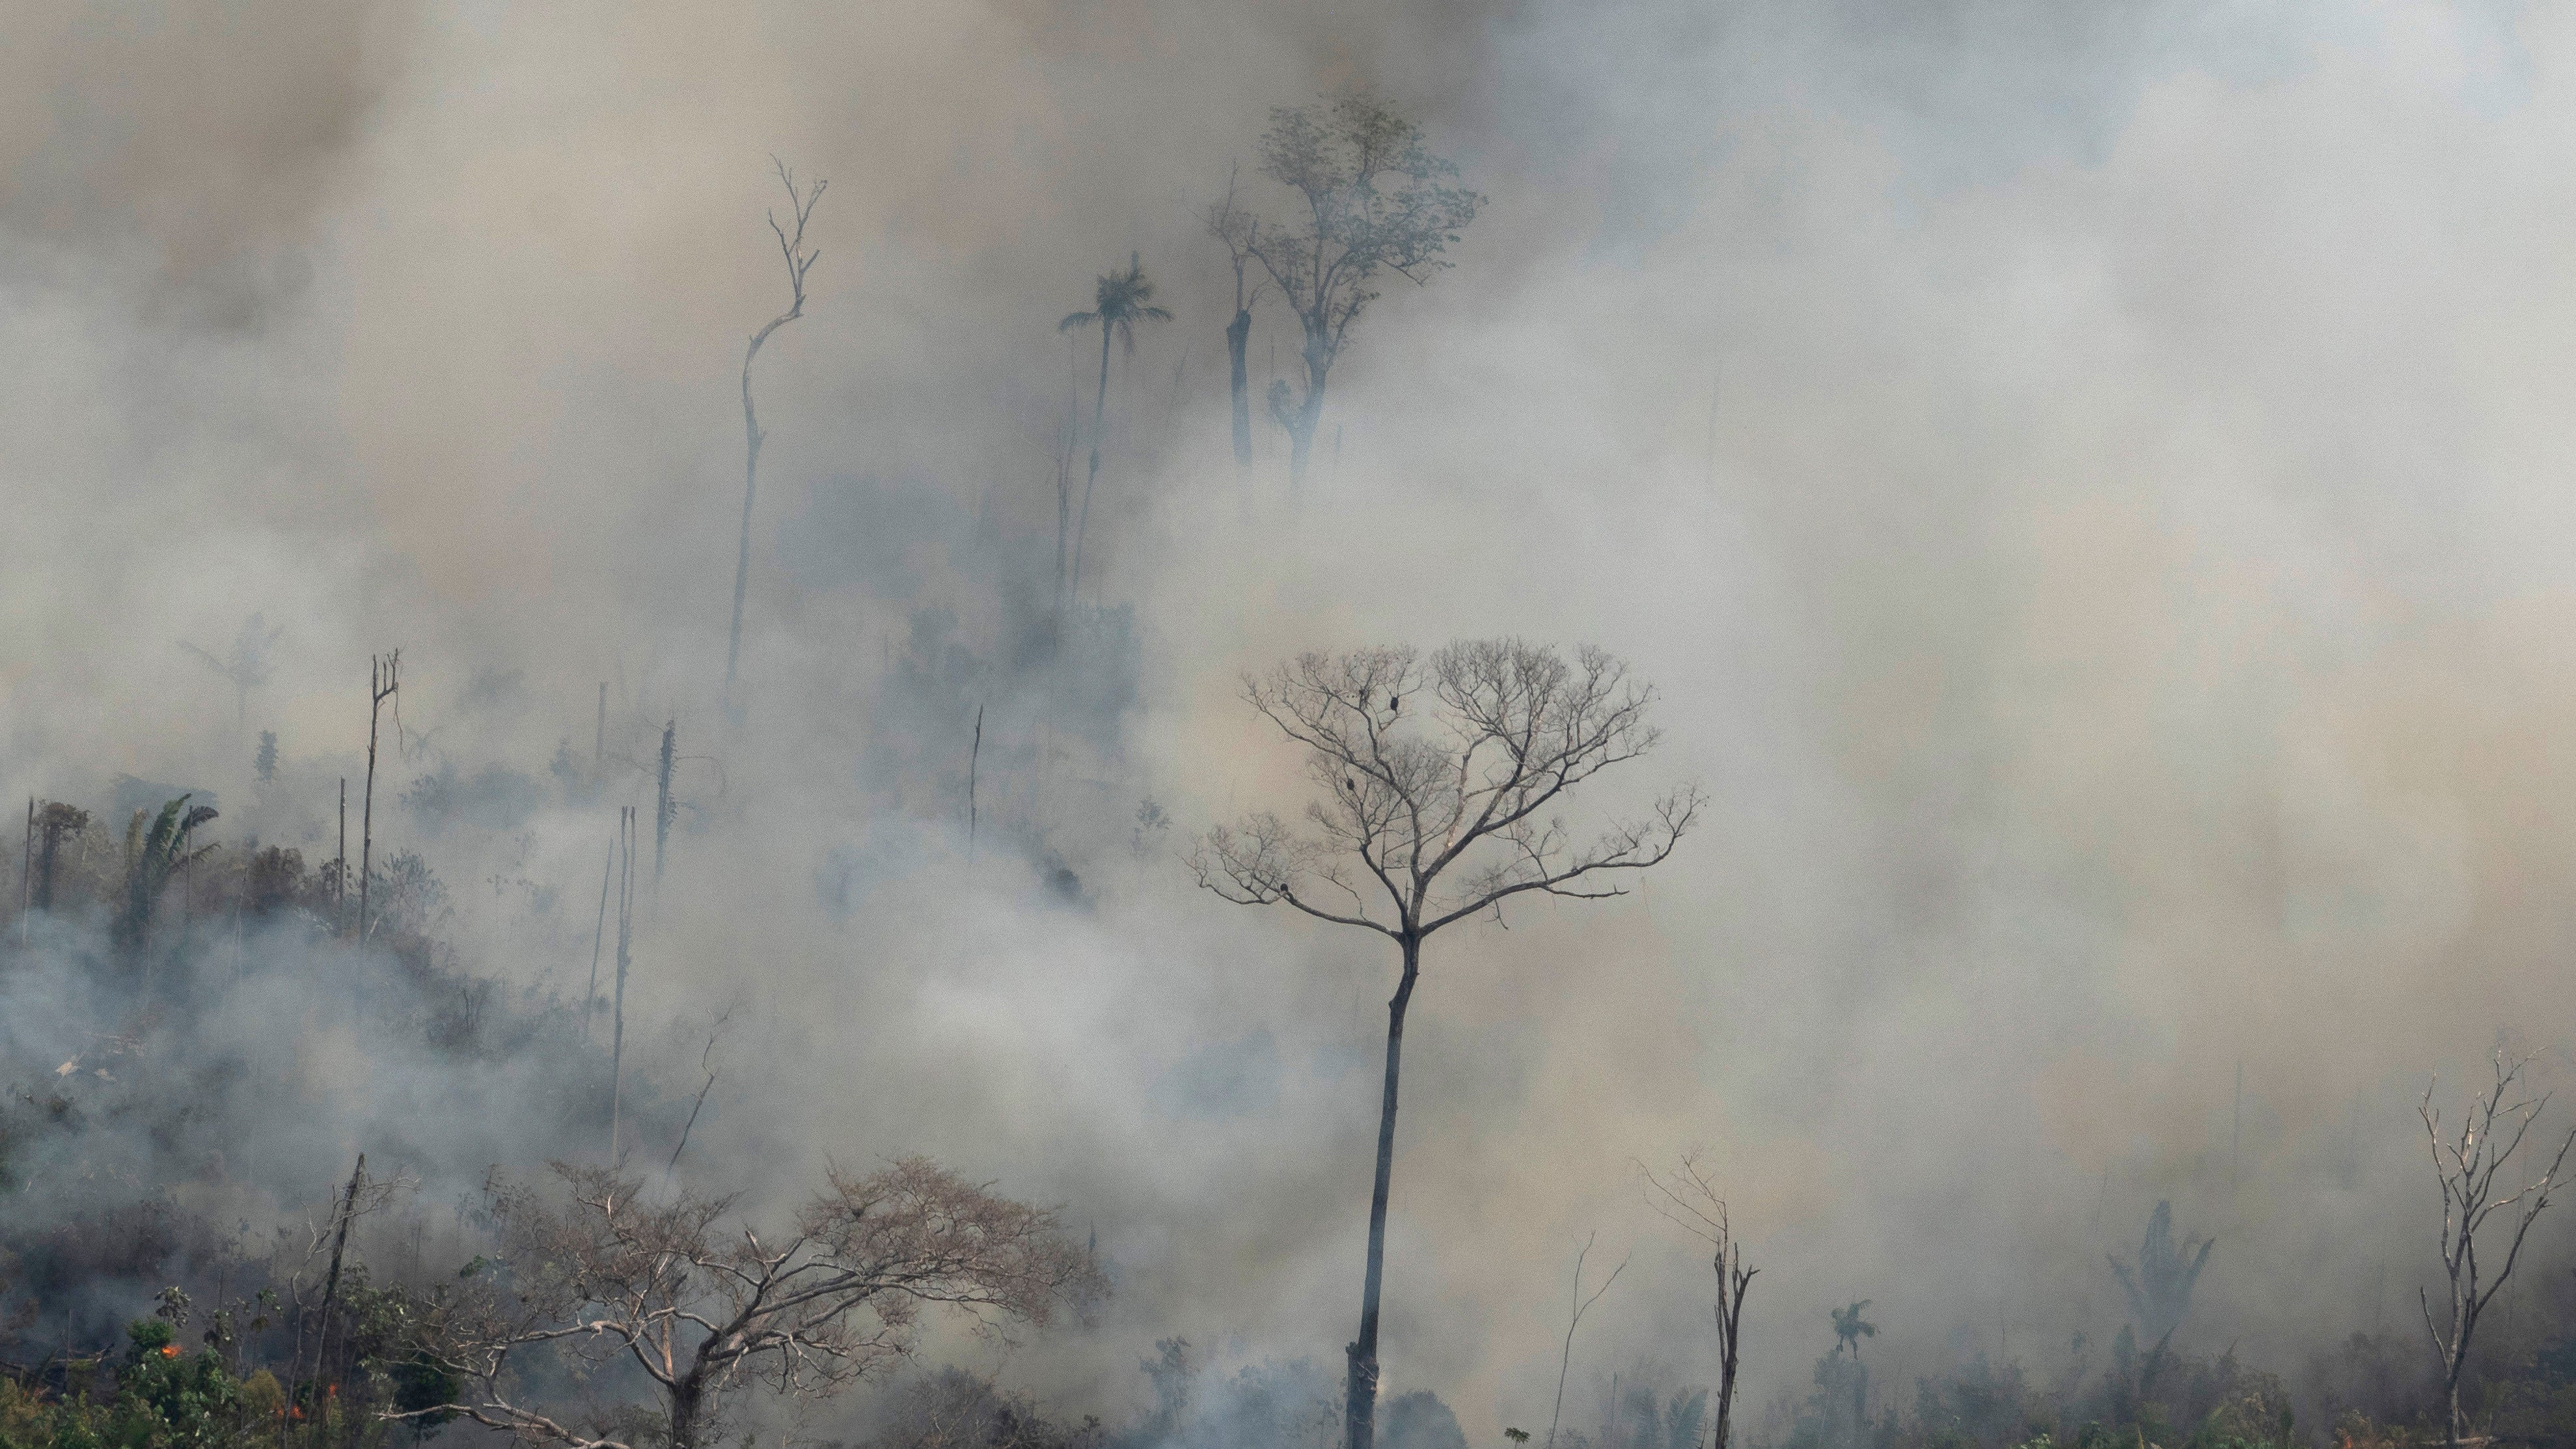 Criminal Gangs Are Behind The Destruction Of The Brazilian Amazon